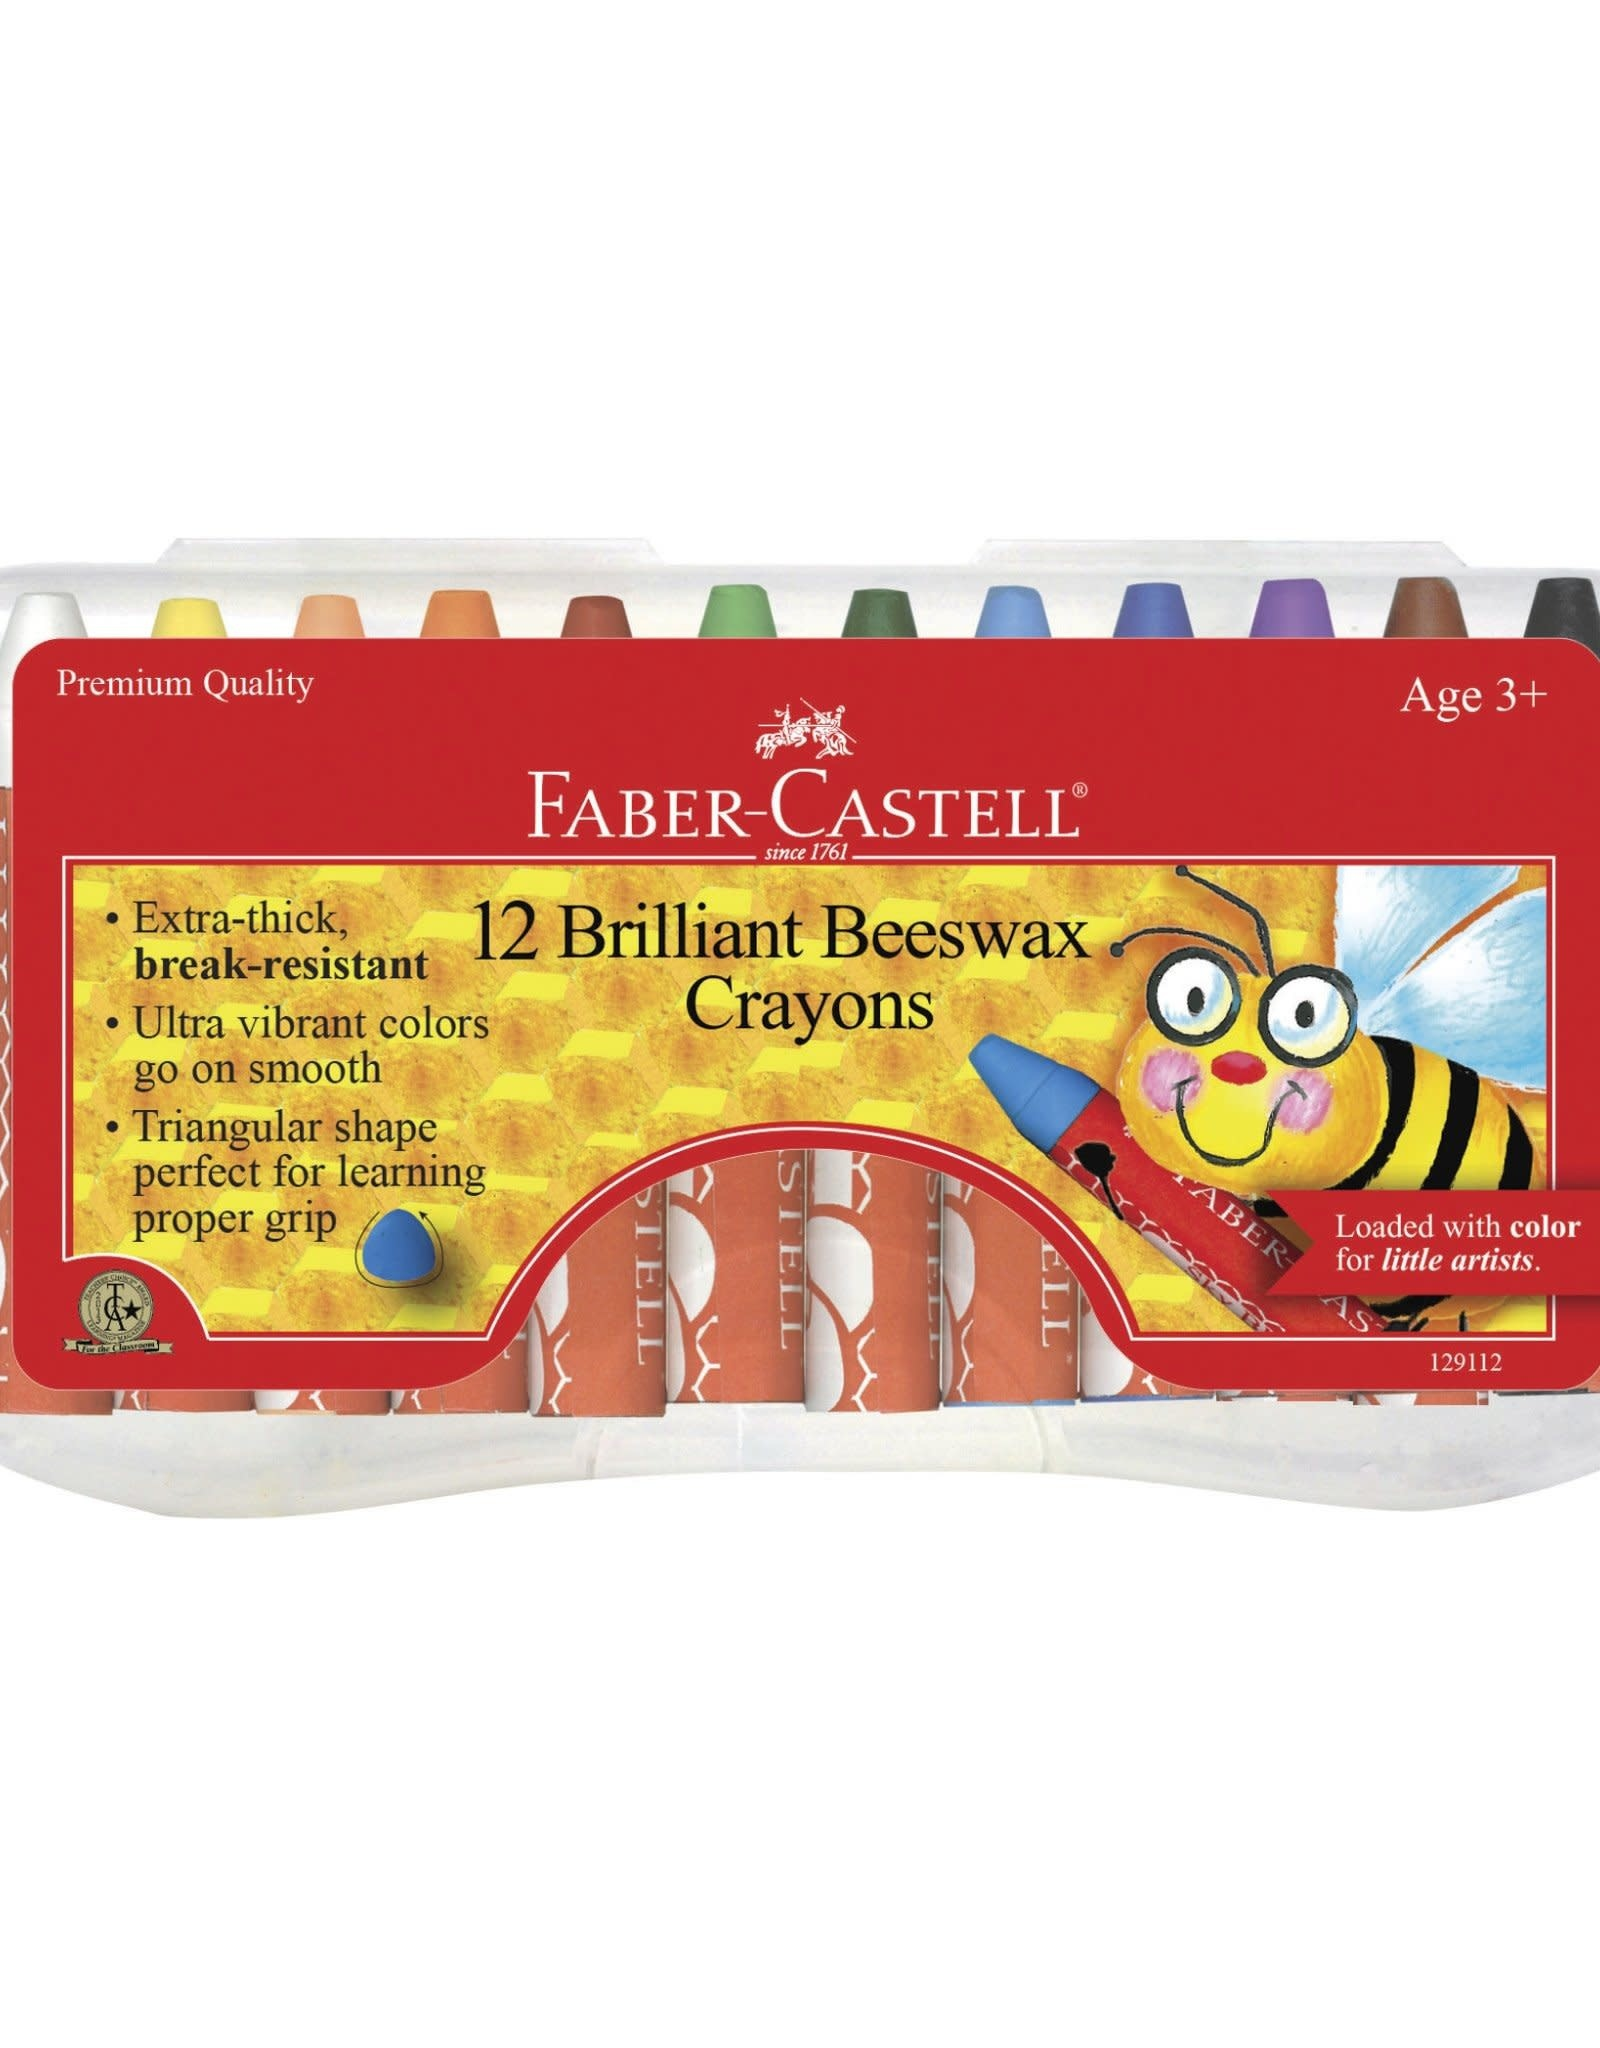 Faber Castell 12 Brilliant Beeswax Crayons in Storage Case